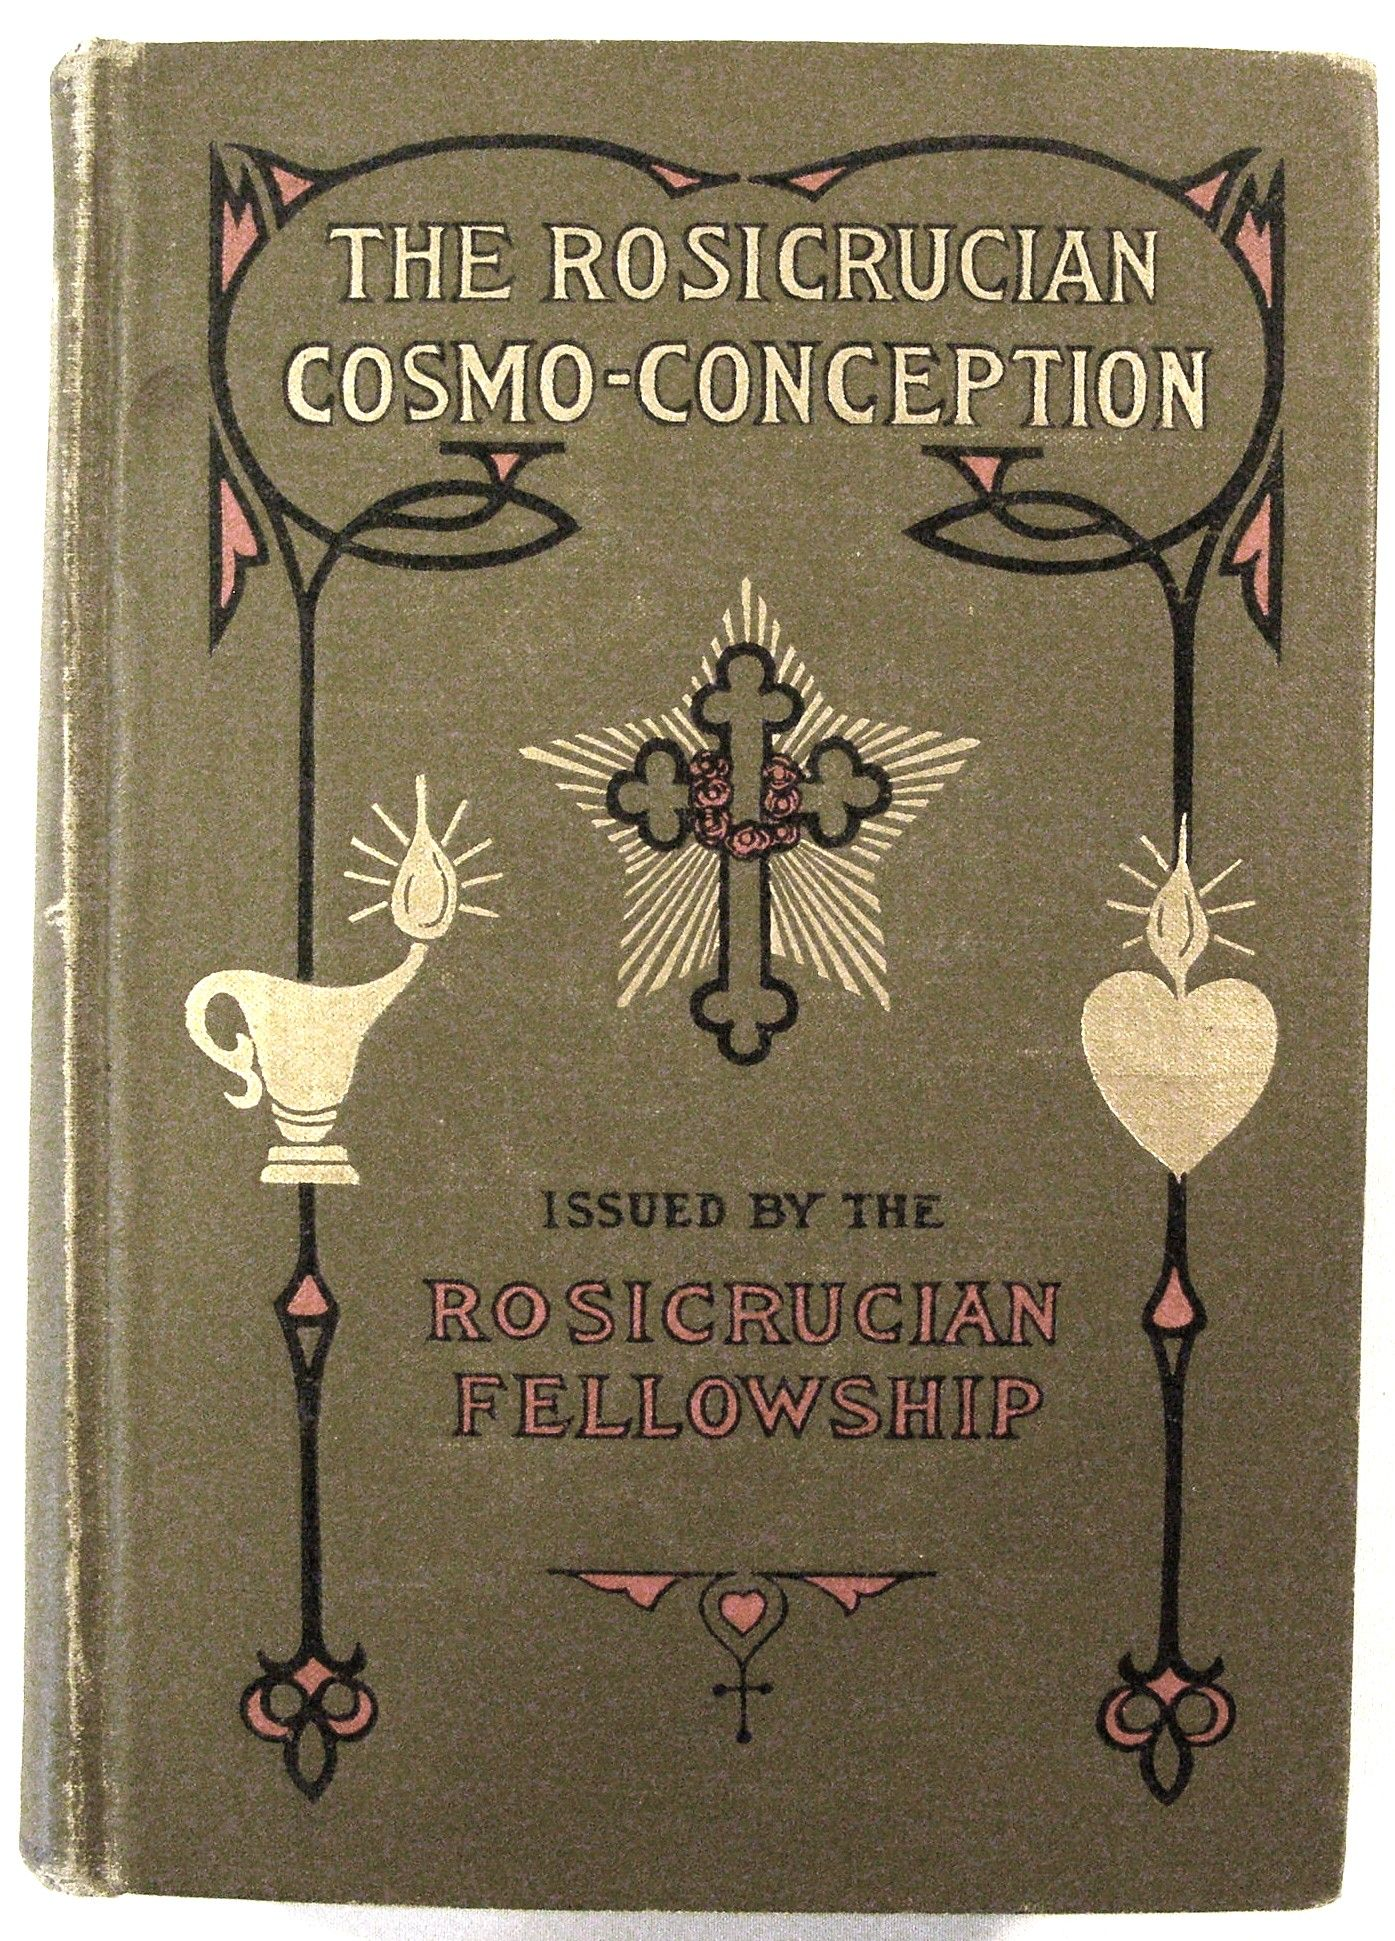 The Rosicrucian Cosmo-Conception or Christian Occult Science by Max